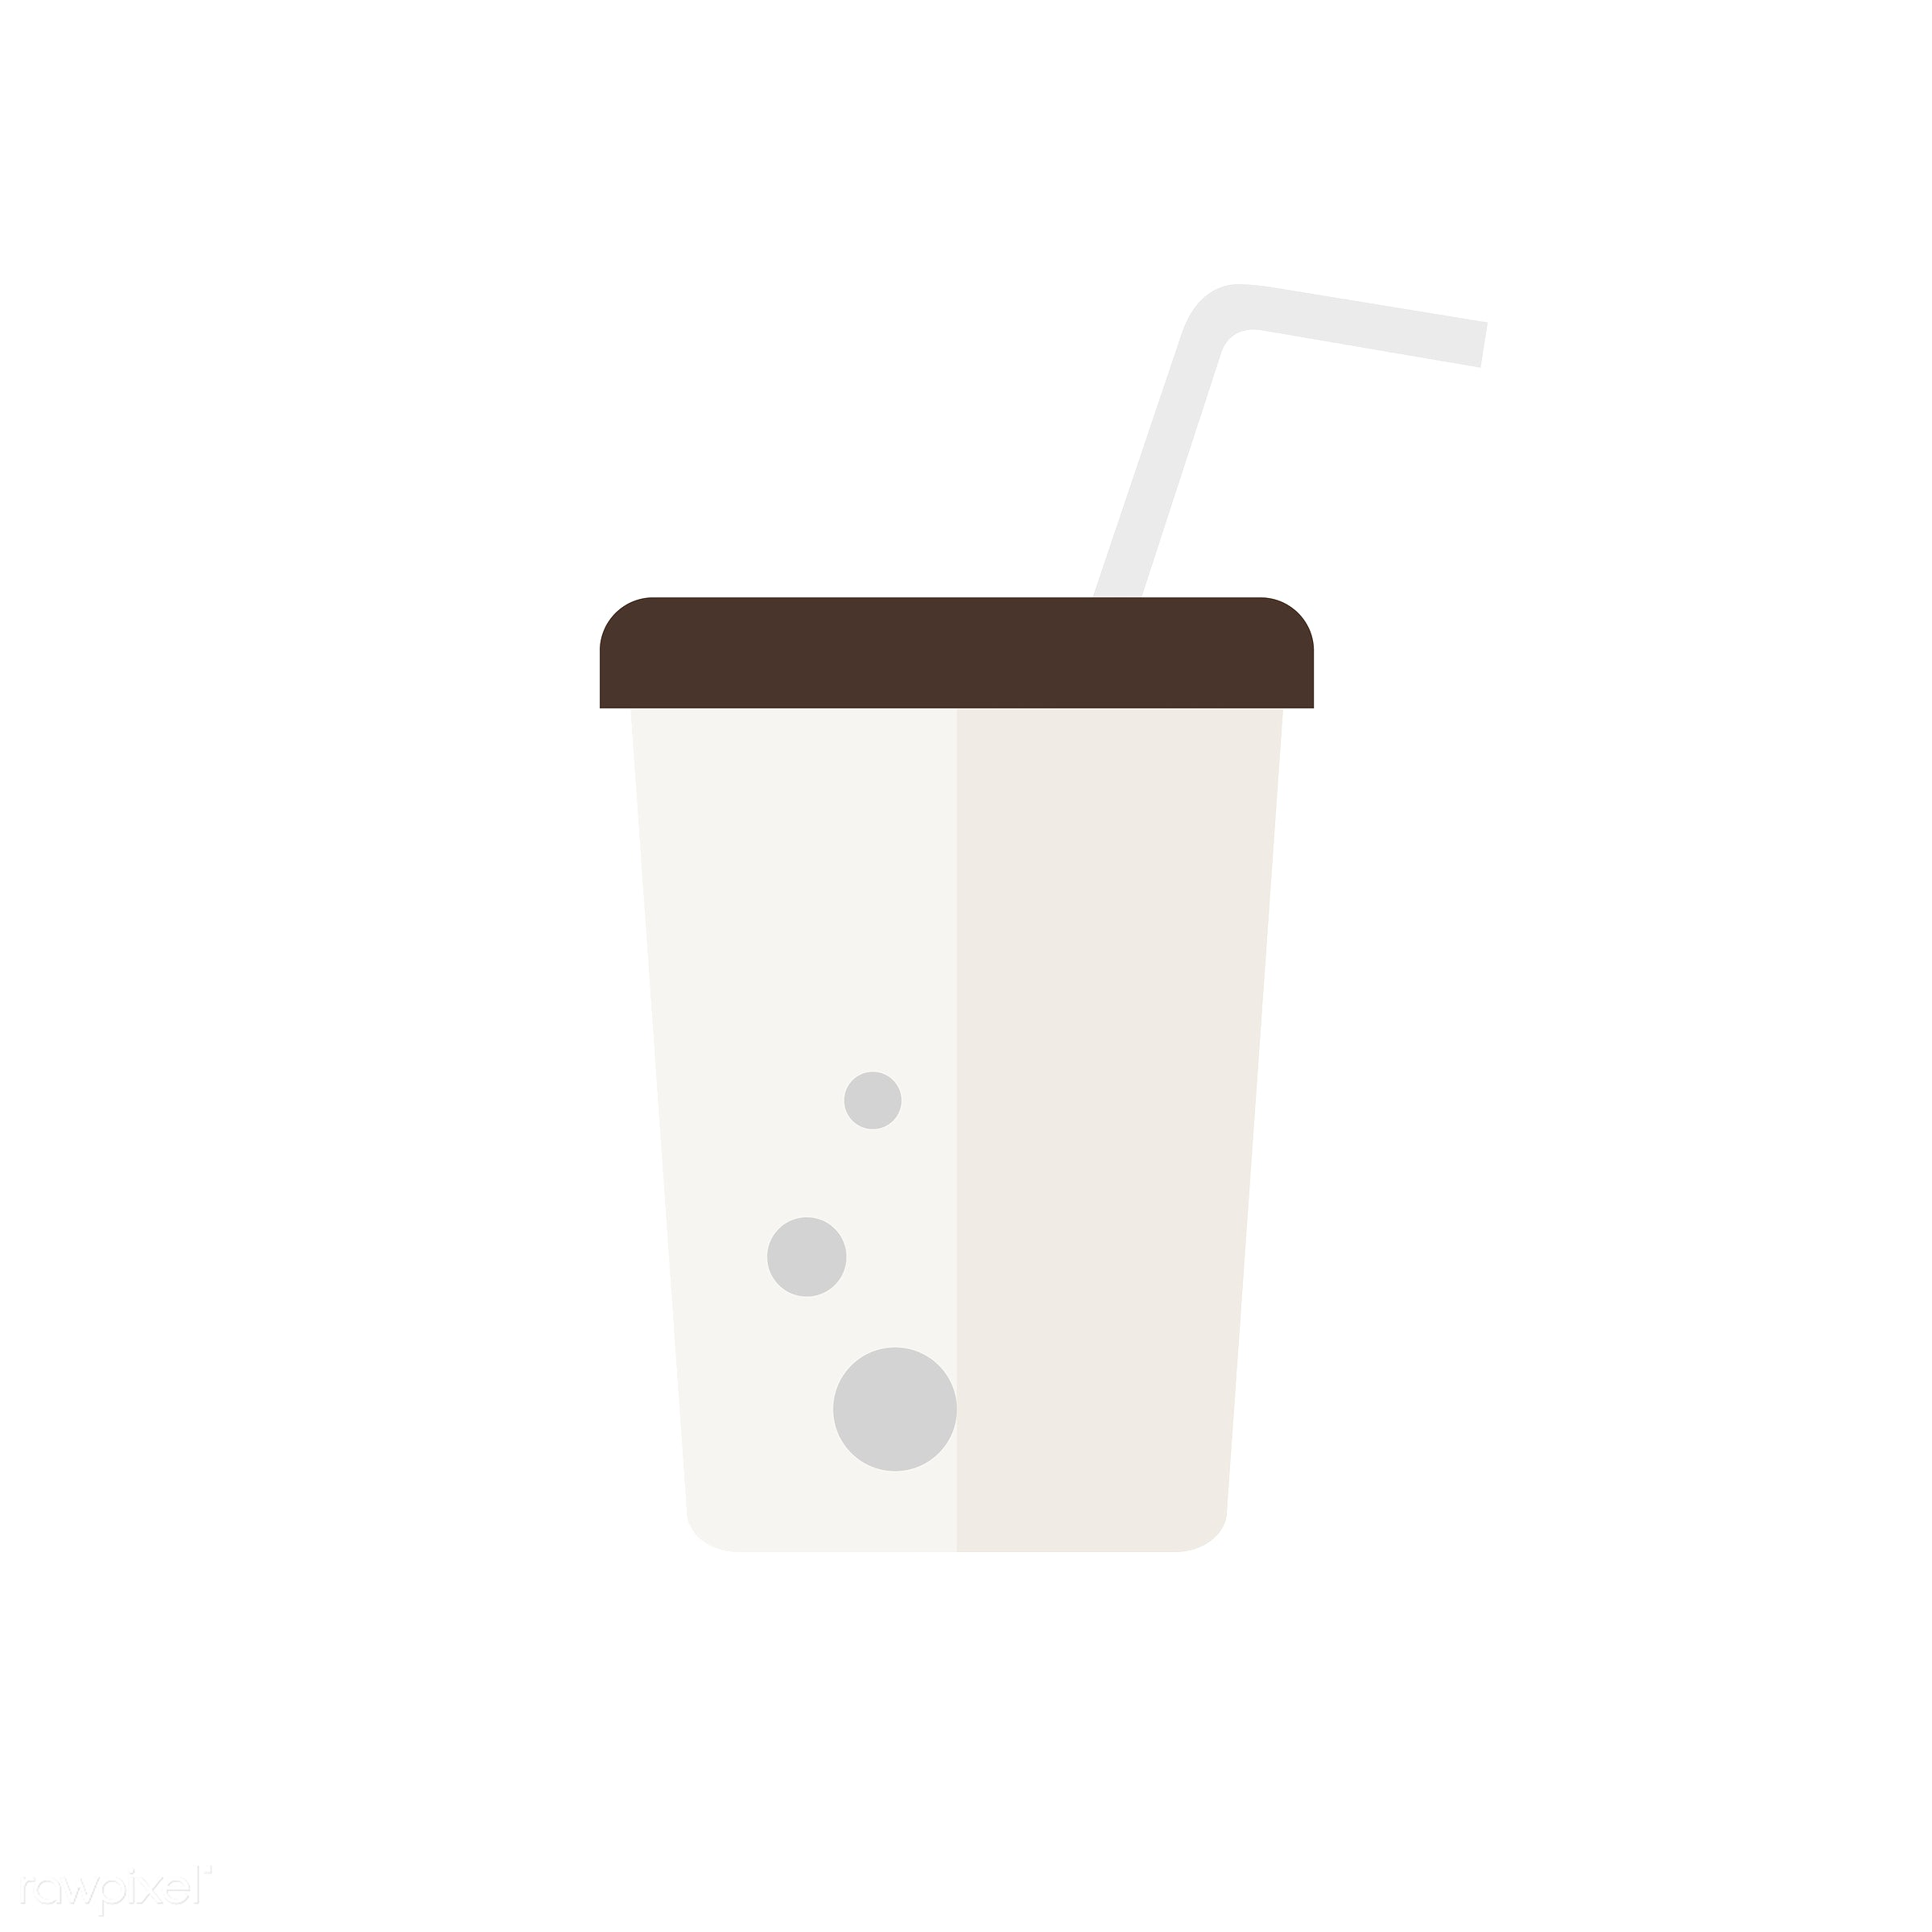 Takeaway cup vector - vector, graphic, illustration, icon, symbol, colorful, cute, drink, beverage, water, takeaway cup,...